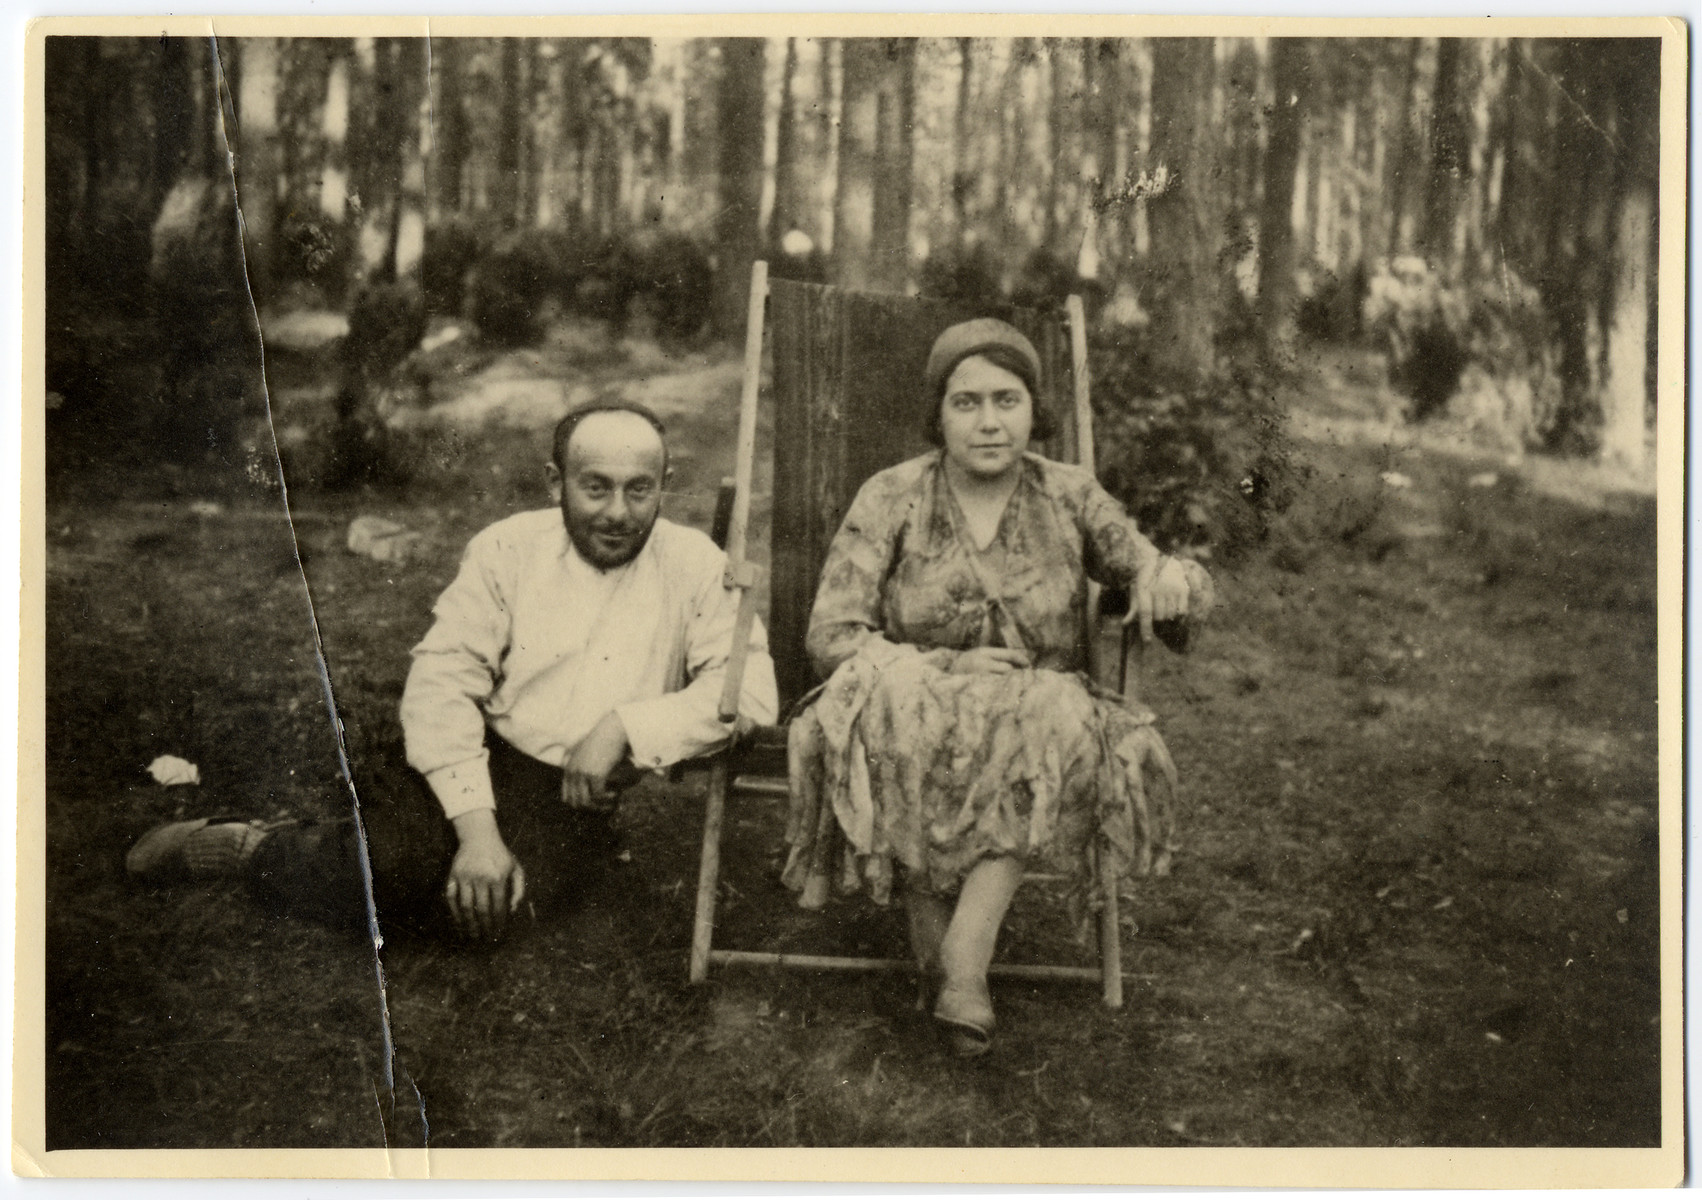 A Jewish couple poses for a photograph while on vacation in Wisniowa-Gora.   Pictured are donor's uncle and aunt, Mosze Fogel and Bela Domb Fogel.